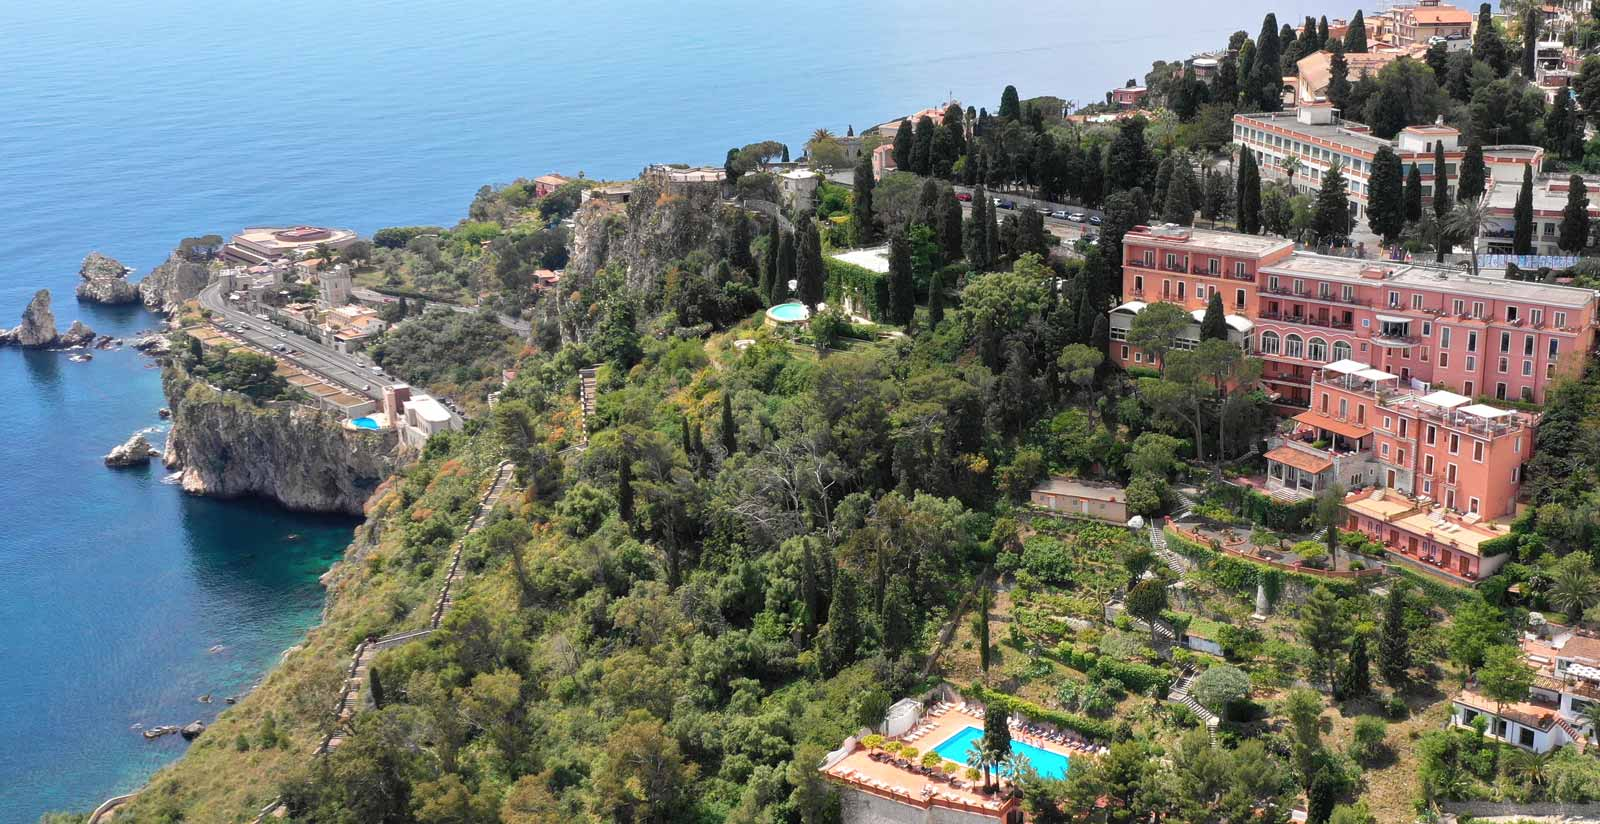 Browse The Gallery Of The 4 Star Grand Hotel Miramare In Taormina